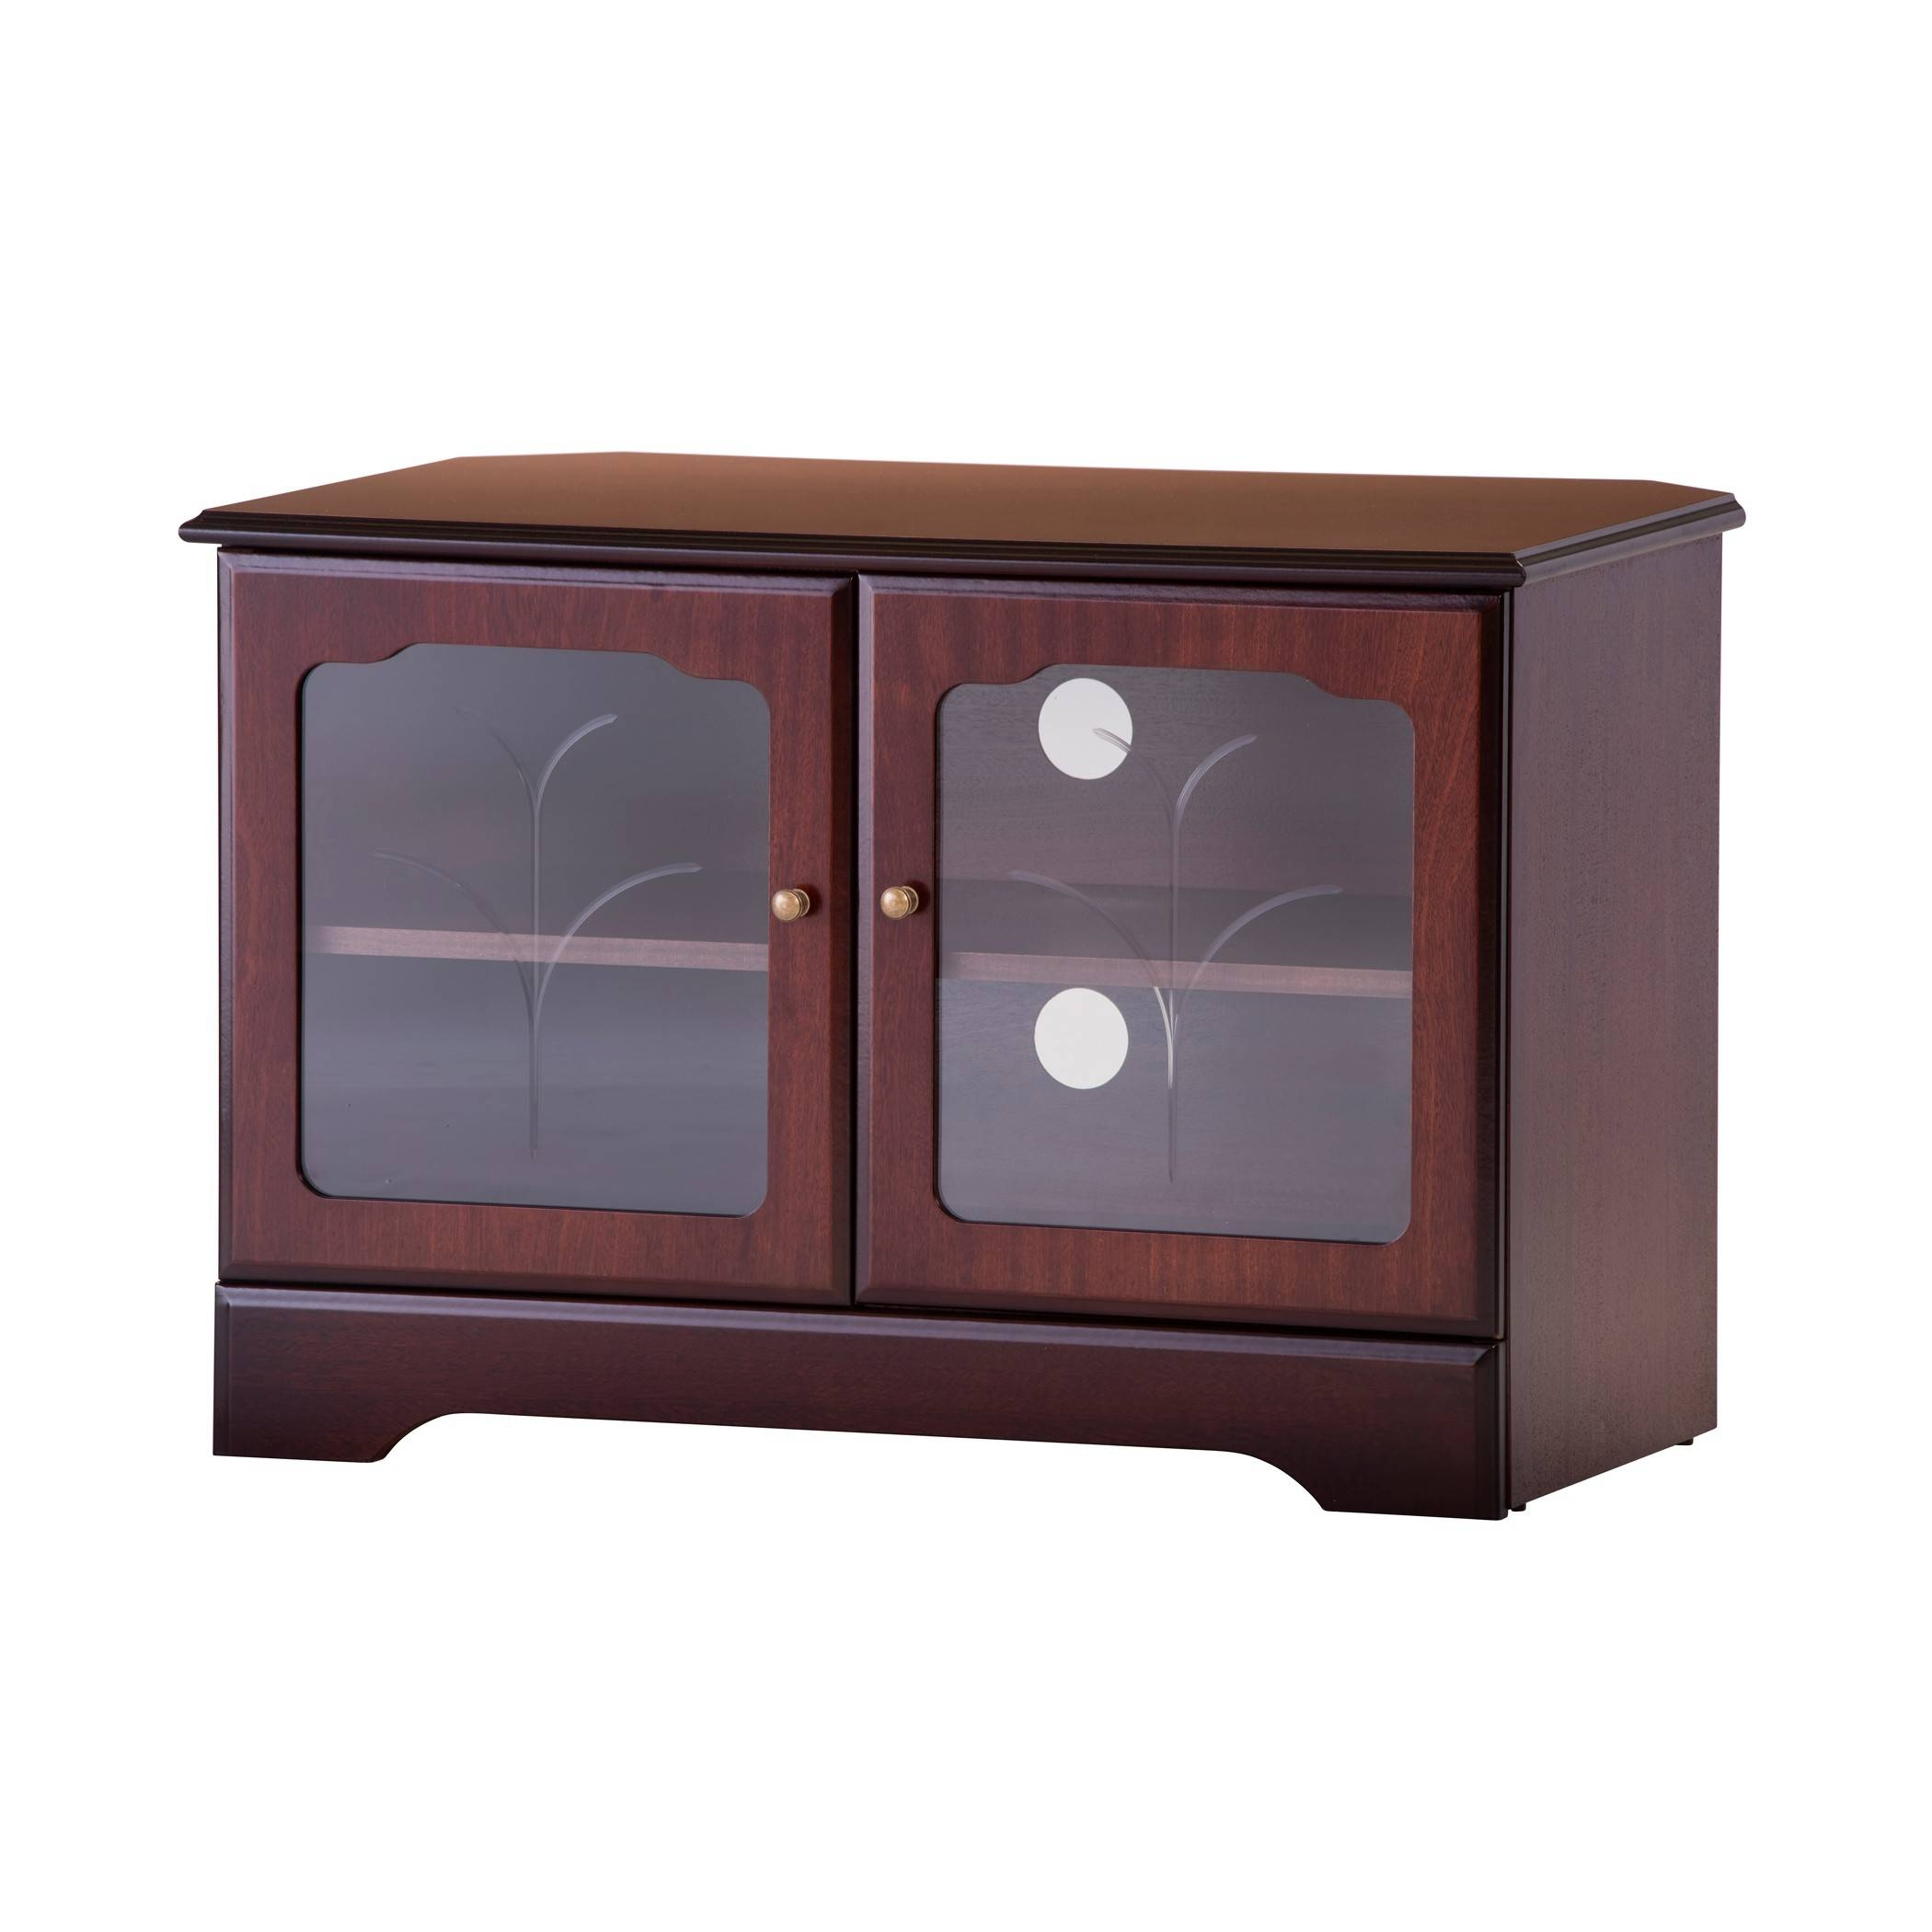 Corner Tv Stand In Mahogany Or Teak | Gola Furniture Uk inside Mahogany Corner Tv Cabinets (Image 4 of 15)